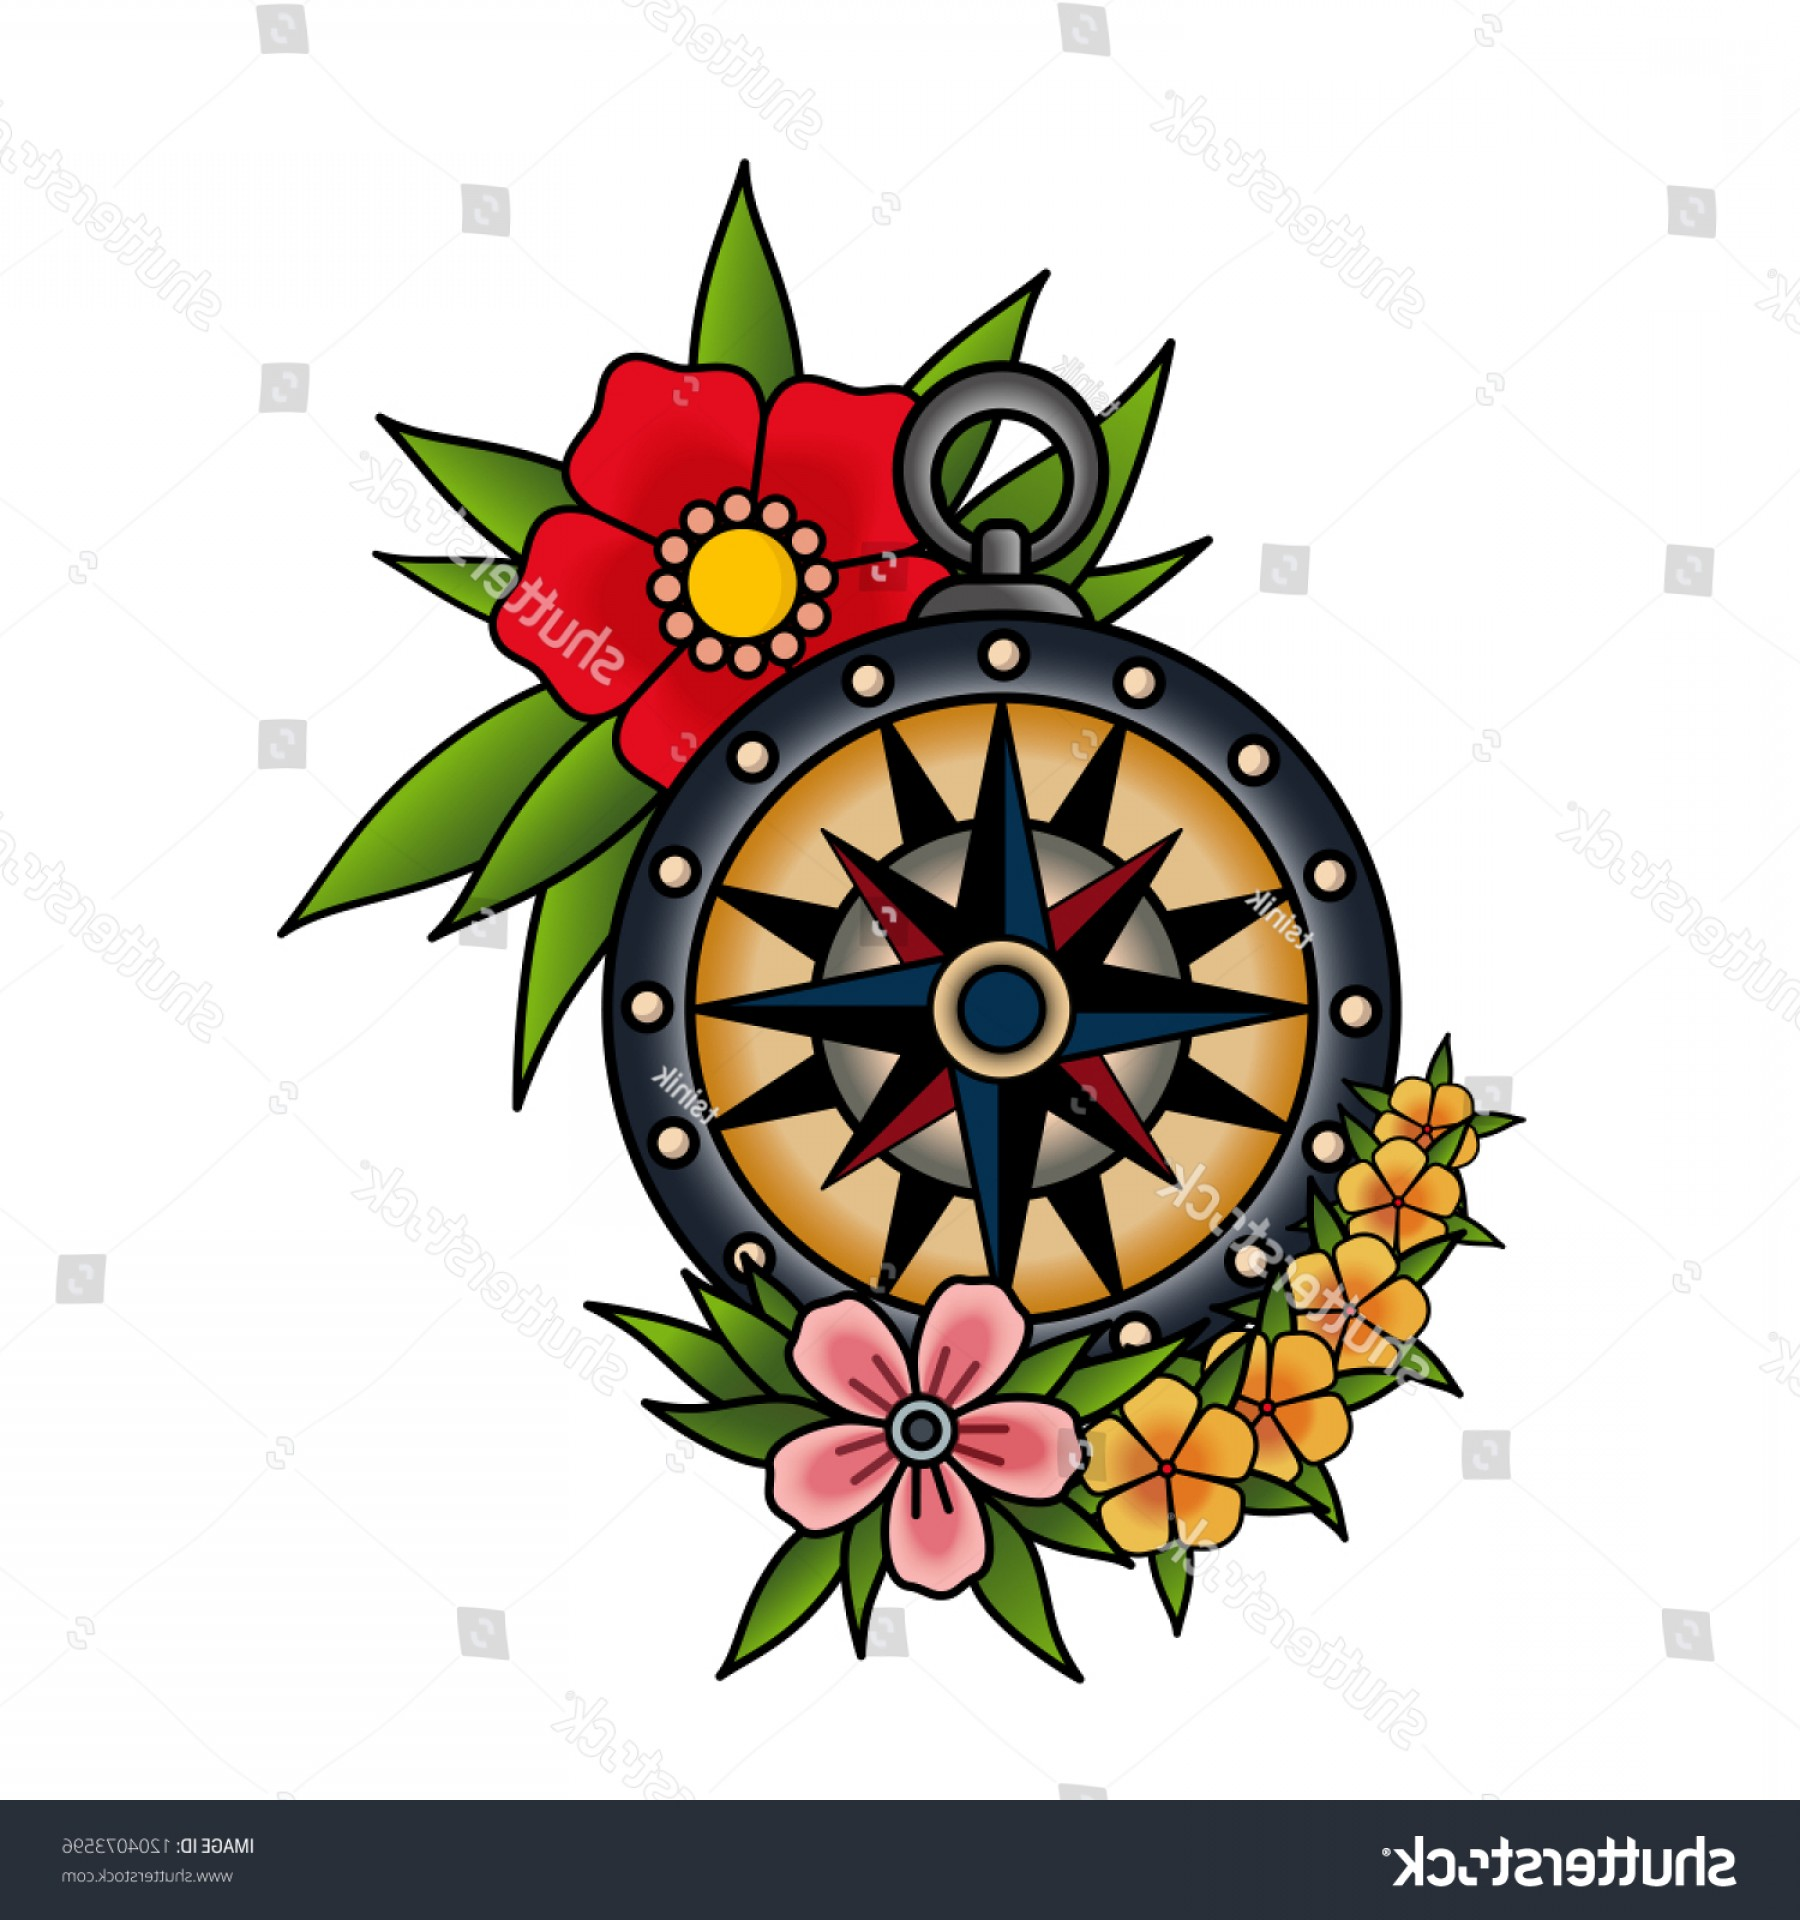 Mandala Vector Simple Compass: Compass Flowers Old School Tattoo Style